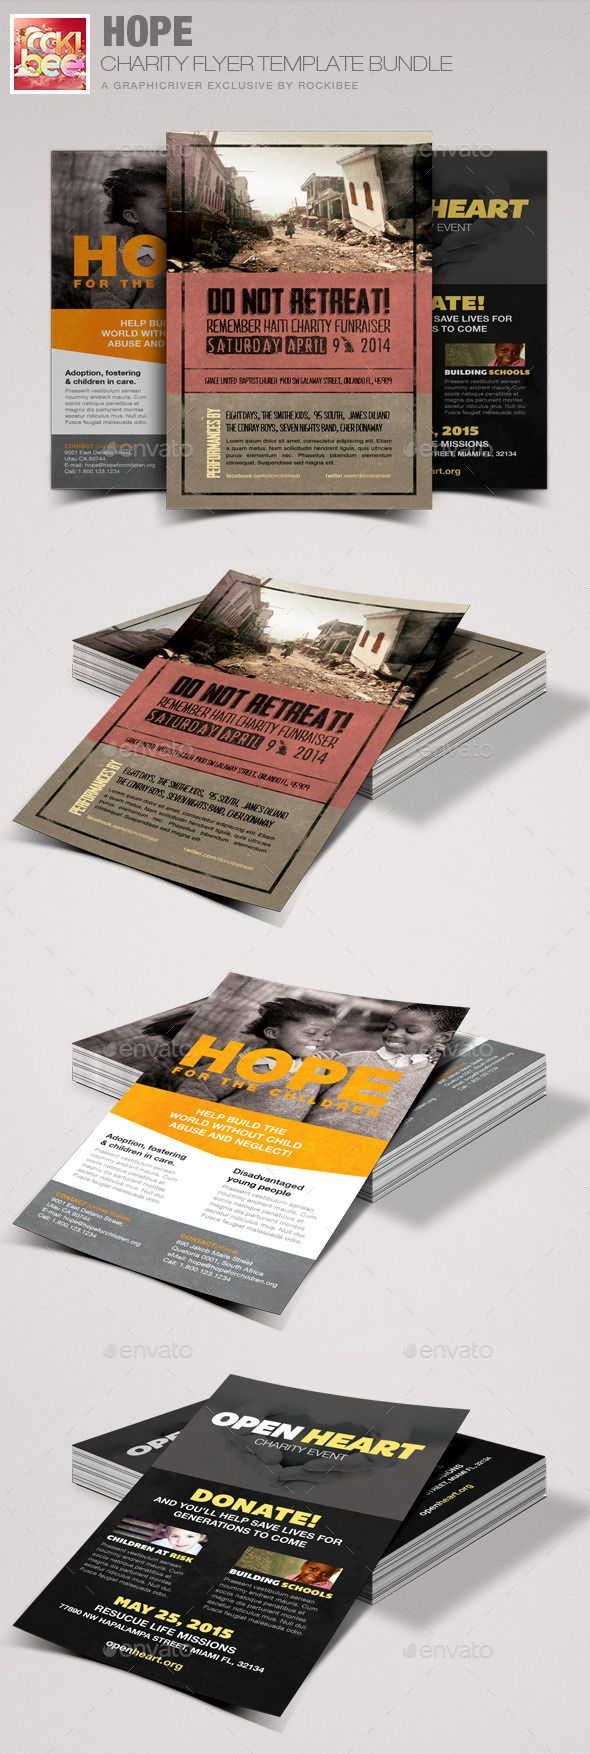 Hope Charity Flyer Template Bundle | Pinterest